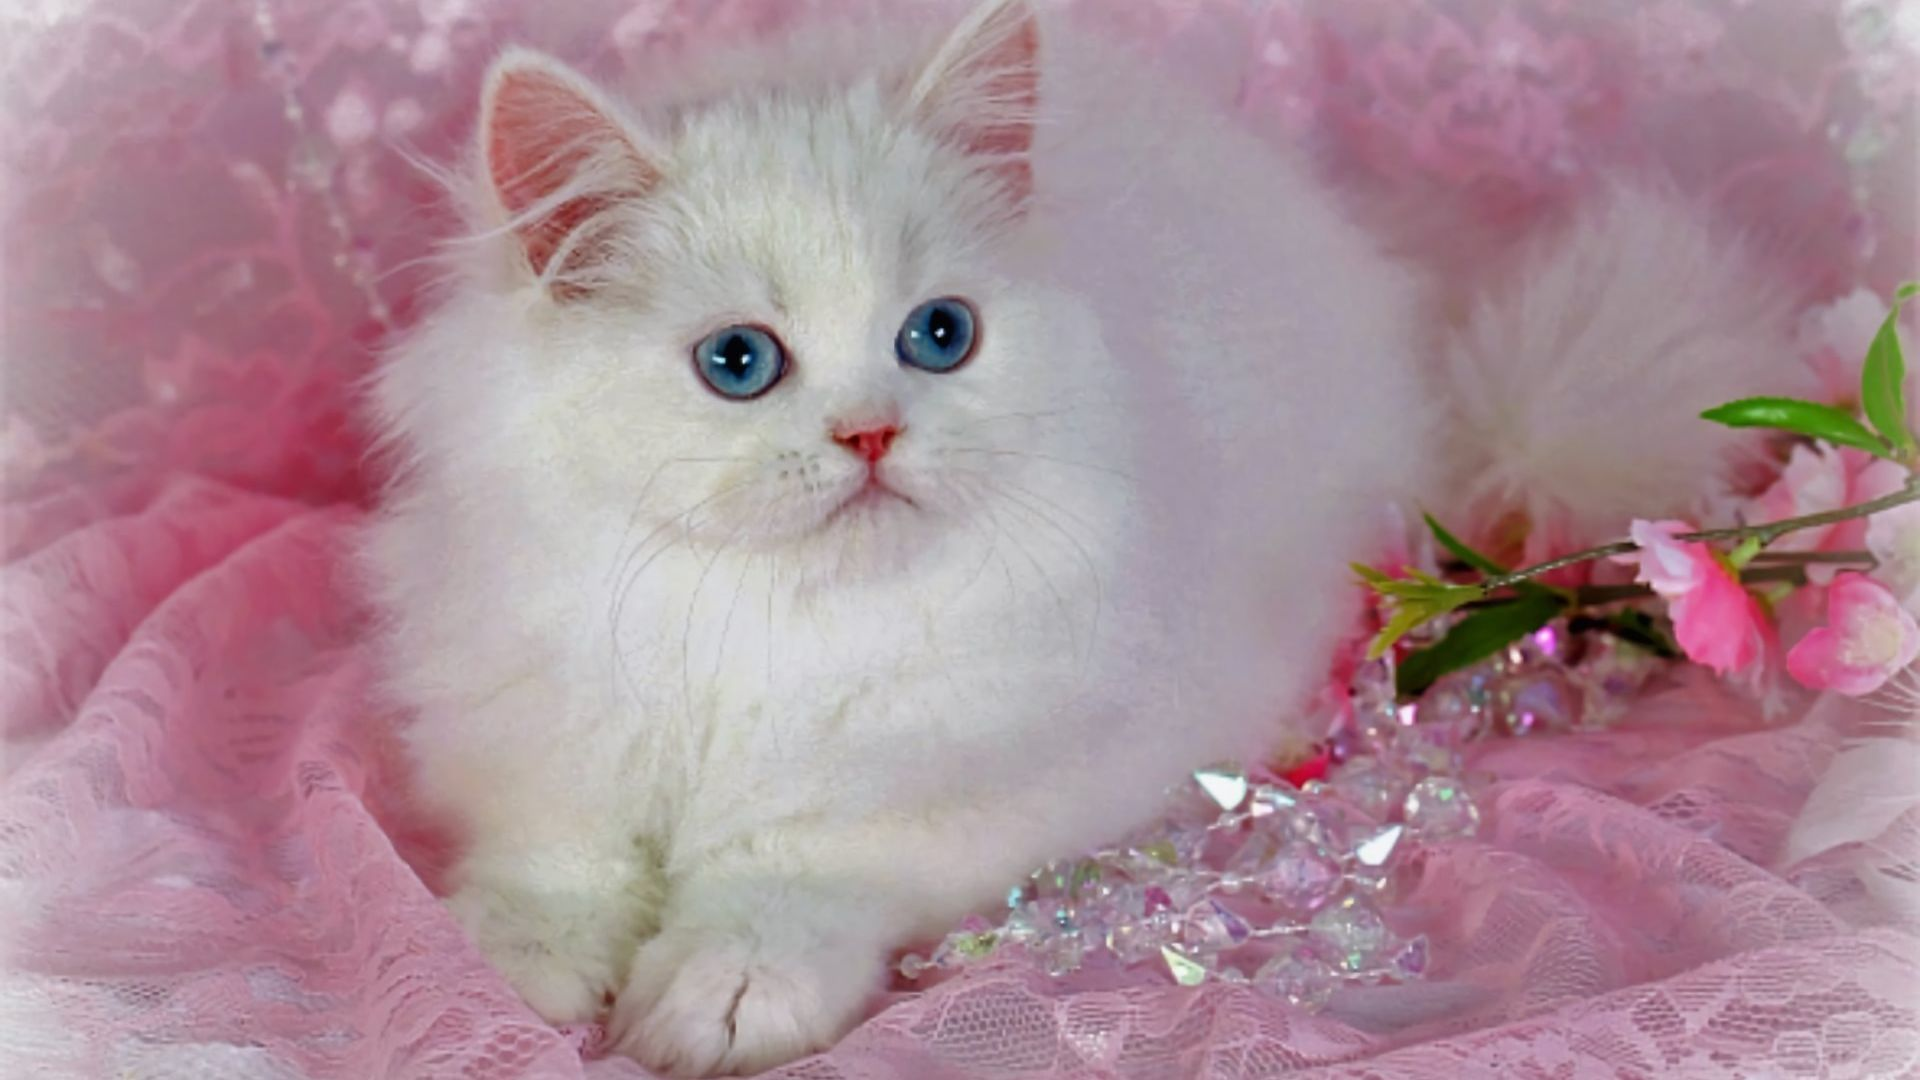 Beautiful Cats Wallpapers   Top Beautiful Cats Backgrounds 1920x1080